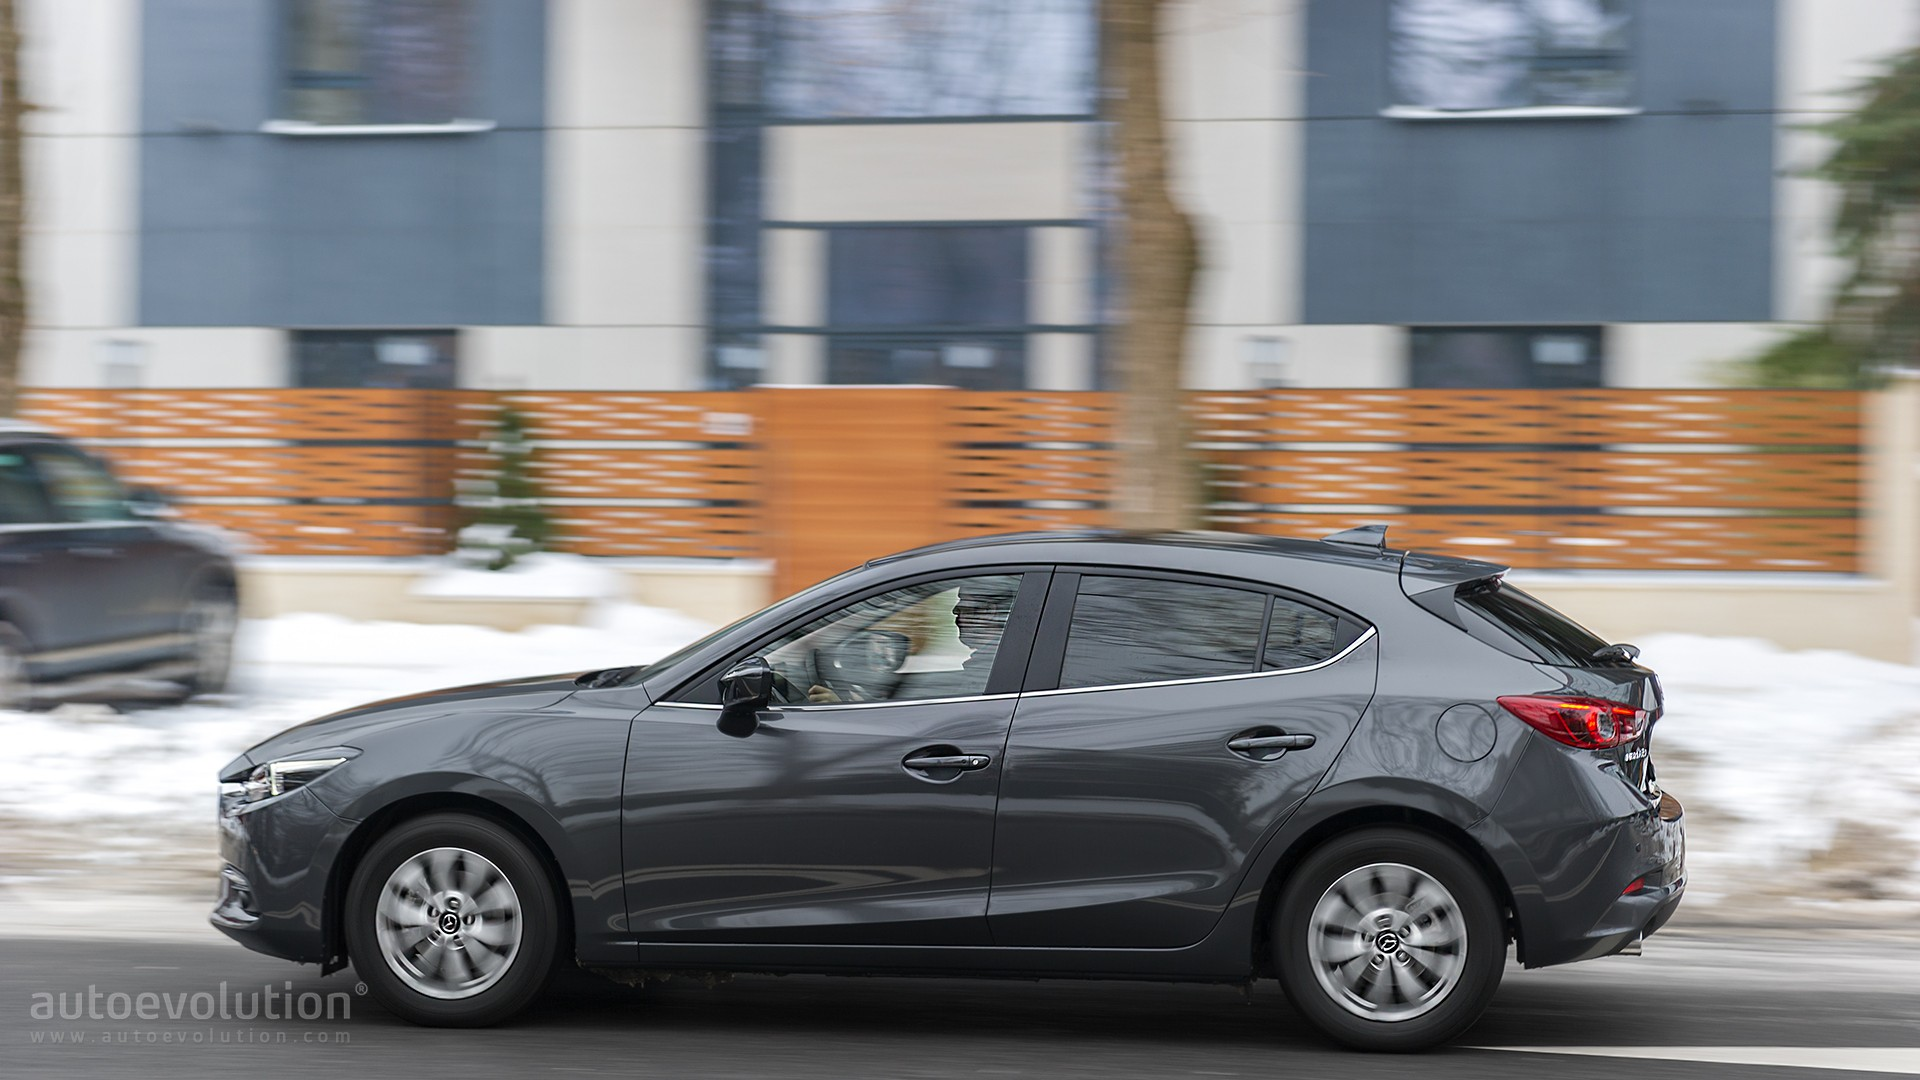 consumer reports lists the best used cars under $20 000